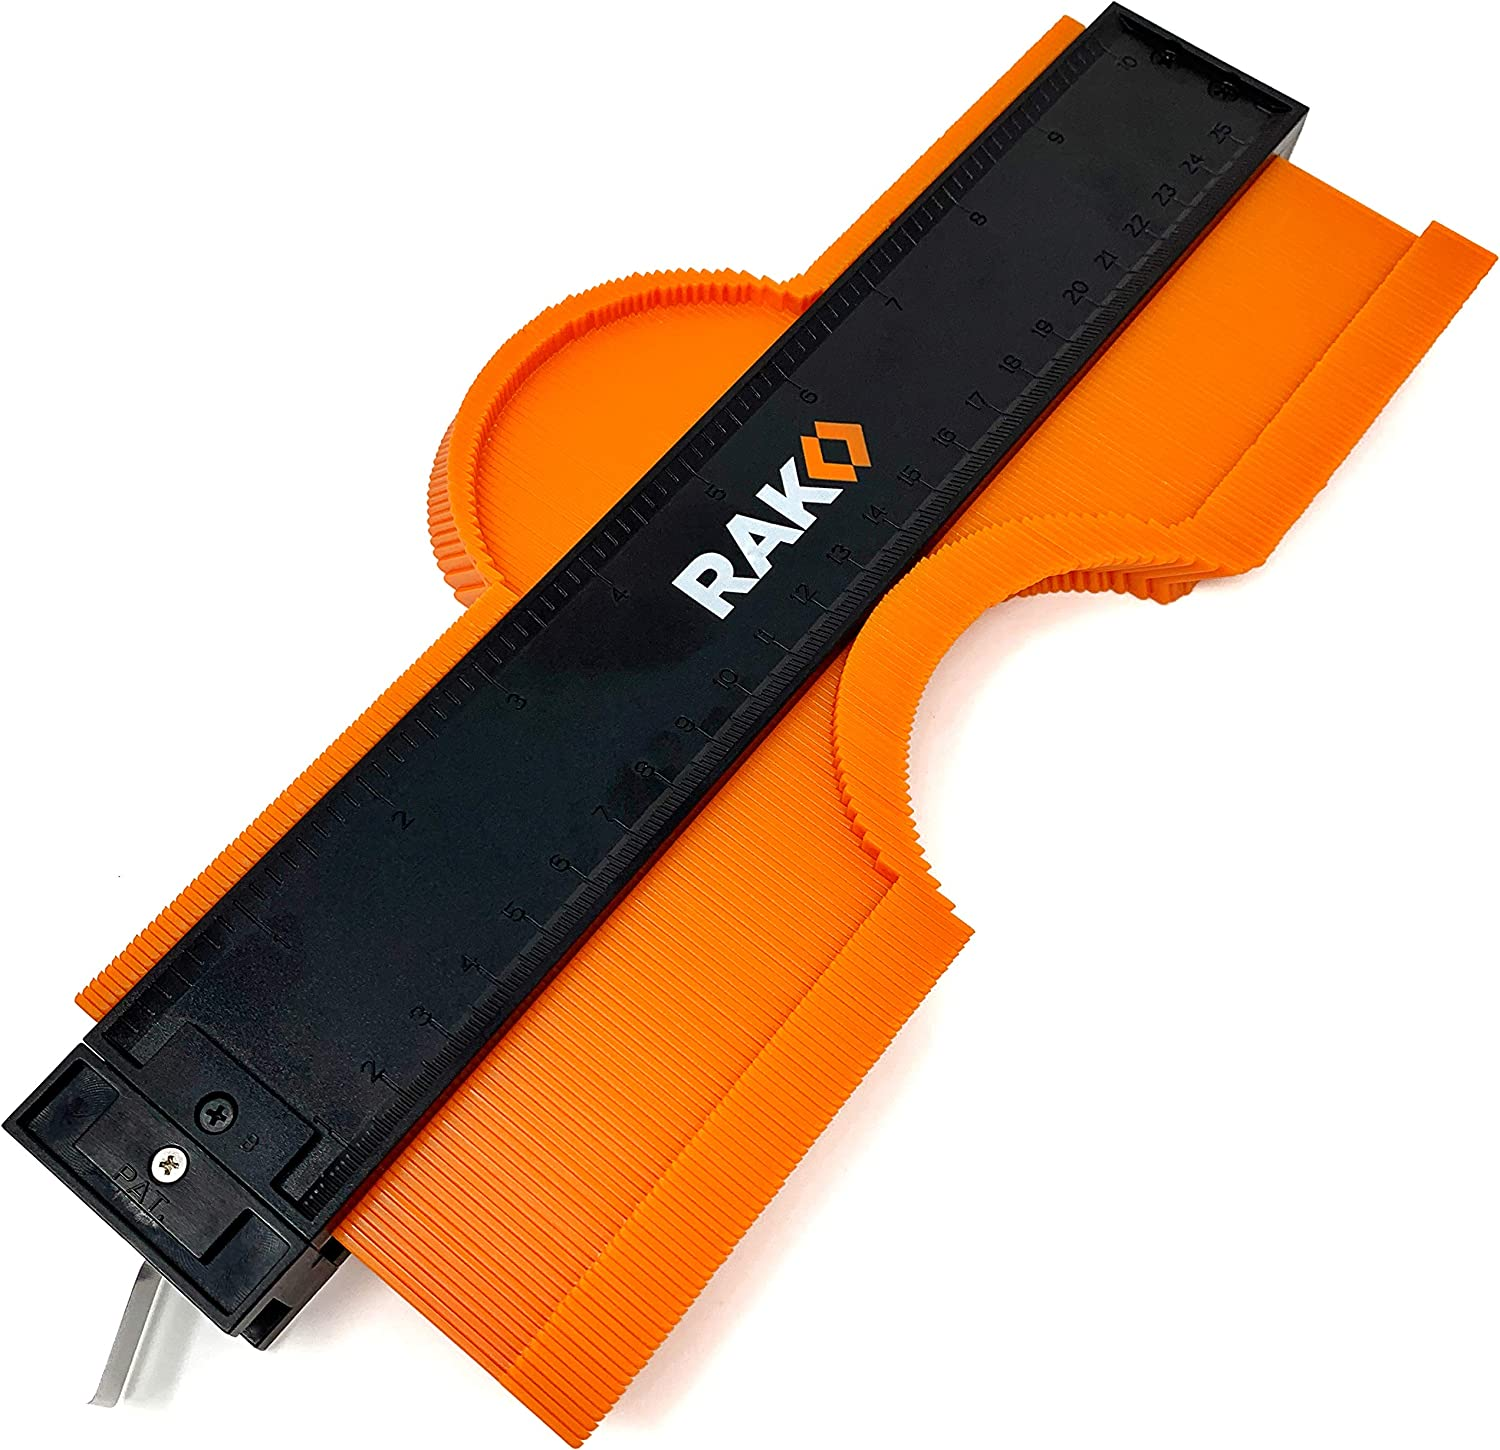 RAK Contour Gauge Shape Duplicator (10 Inch Lock) Template Tool with Adjustable Lock Precisely Copies Irregular and Awkward Shapes - Must Have Tool for DIY Handyman, Construction